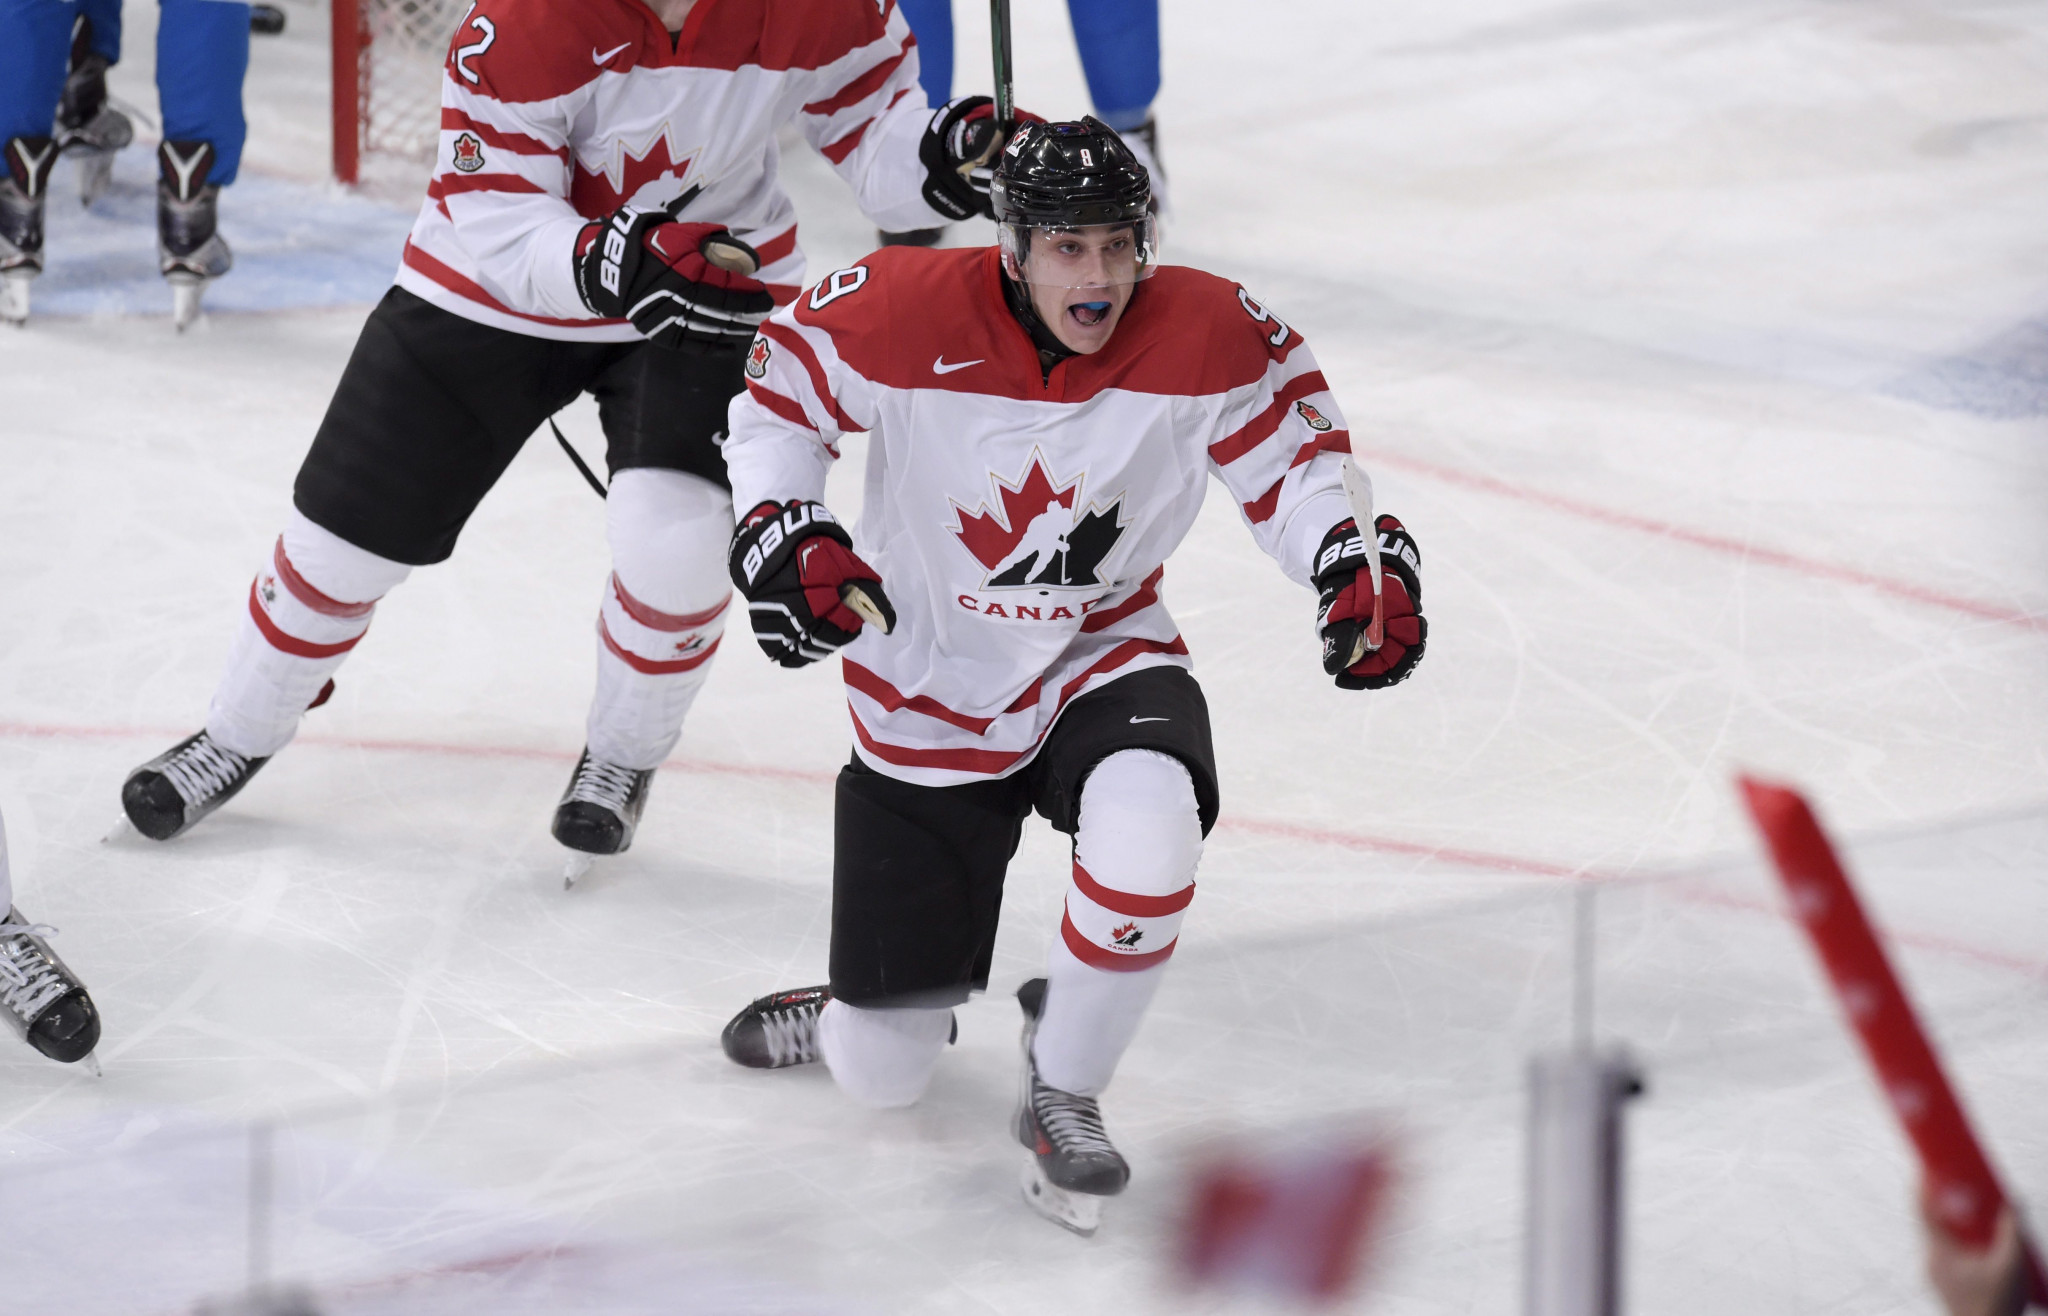 The tournament brings together the best young players in the world ©IIHF